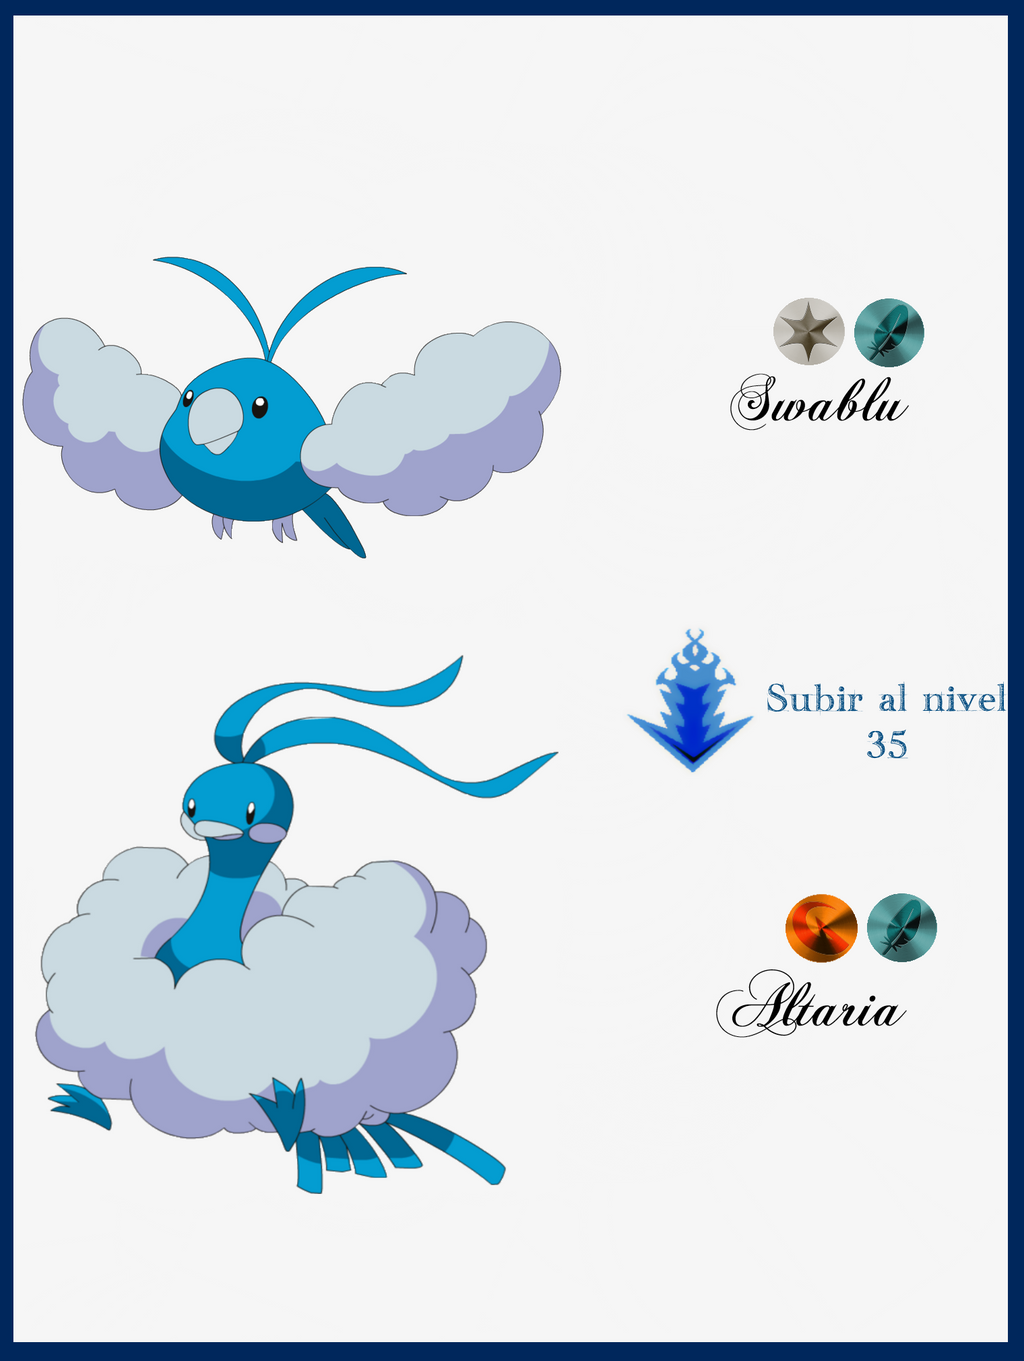 When does the Pokemon Swablu evolve - answers.com